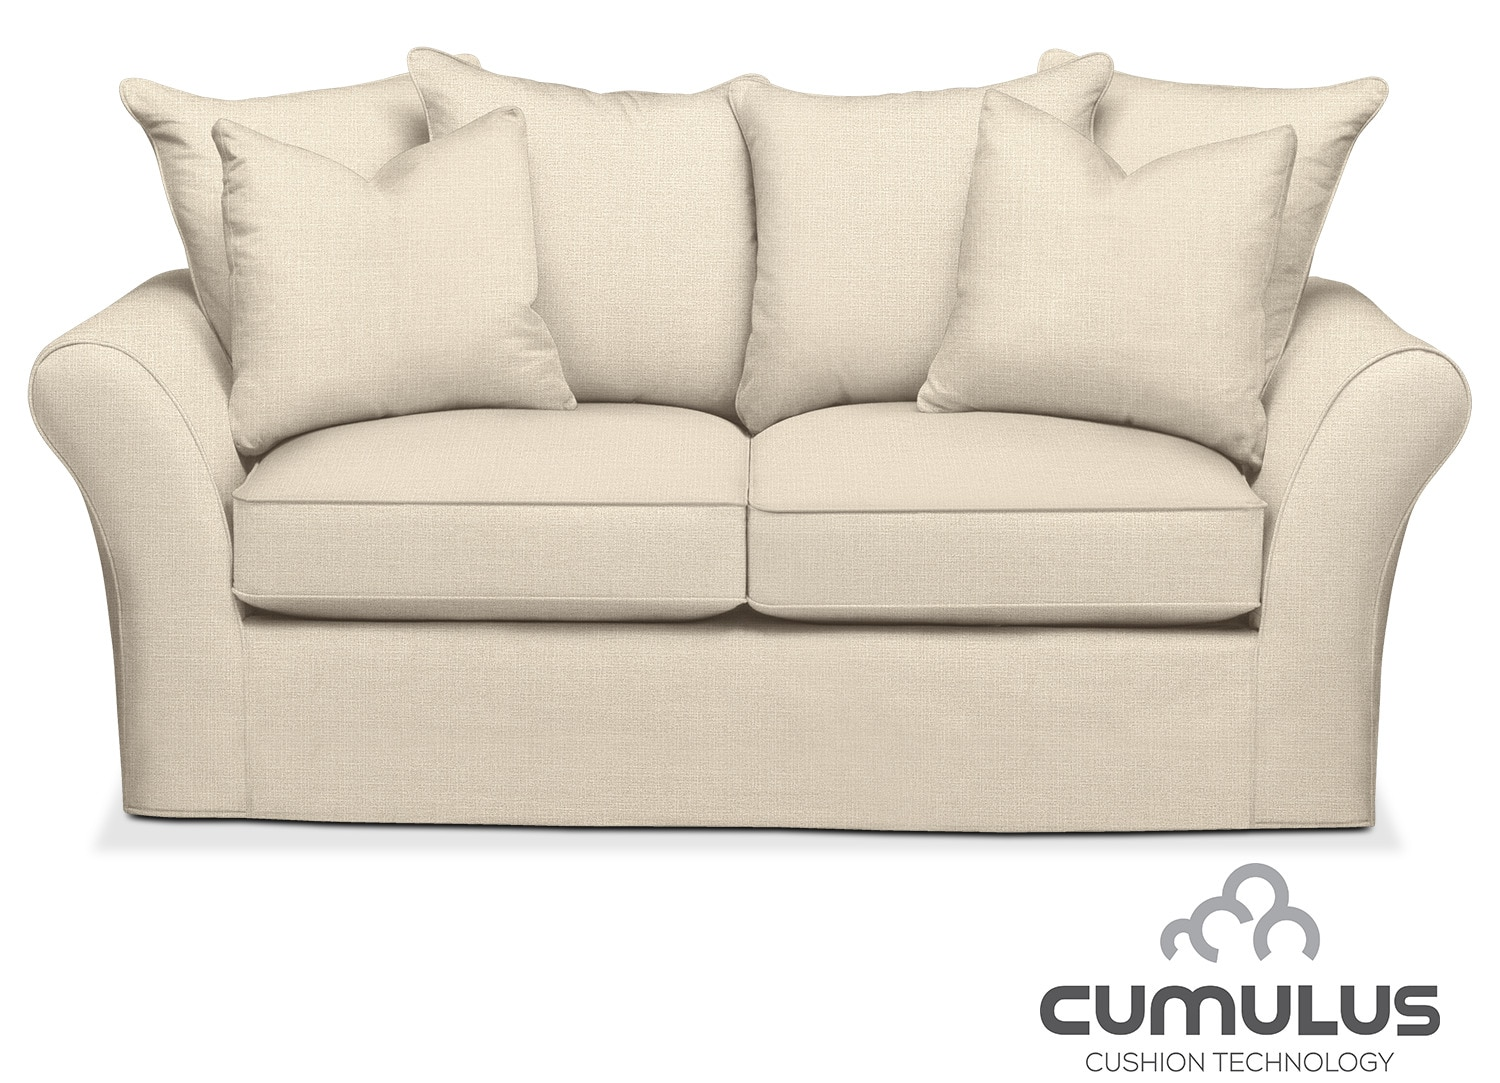 Sofas amp Couches Living Room Seating Value City Furniture : 518050 from www.valuecityfurniture.com size 1500 x 1083 jpeg 315kB